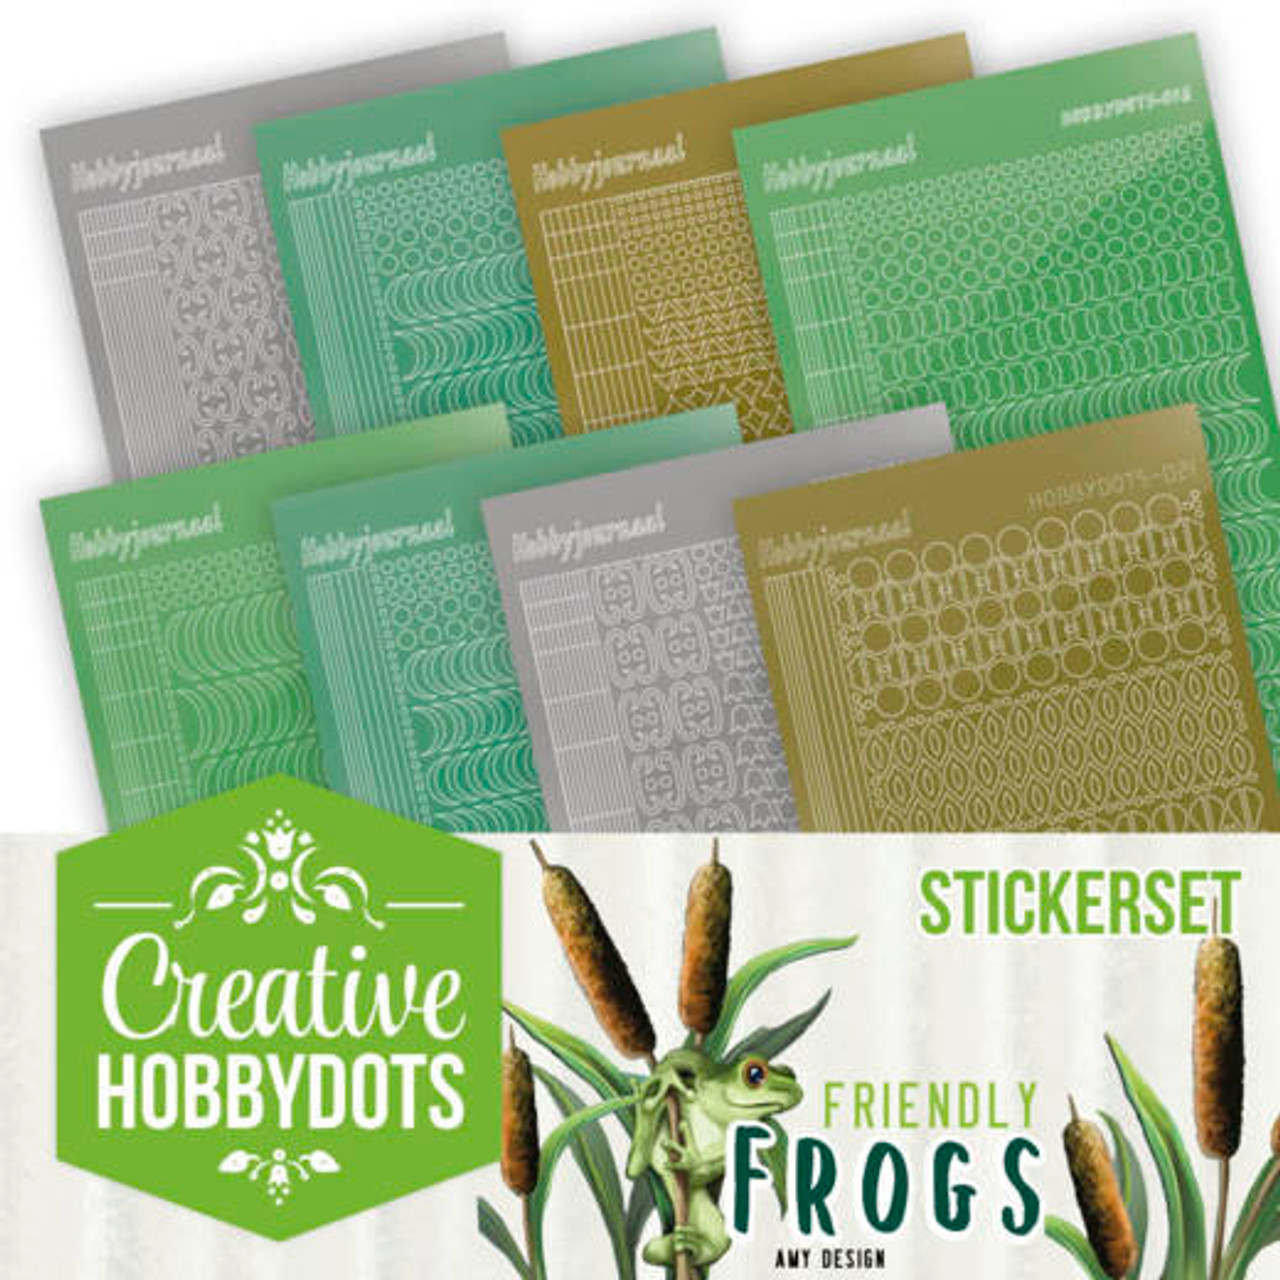 Creative Hobbydots 10 Booklet - Friendly Frogs